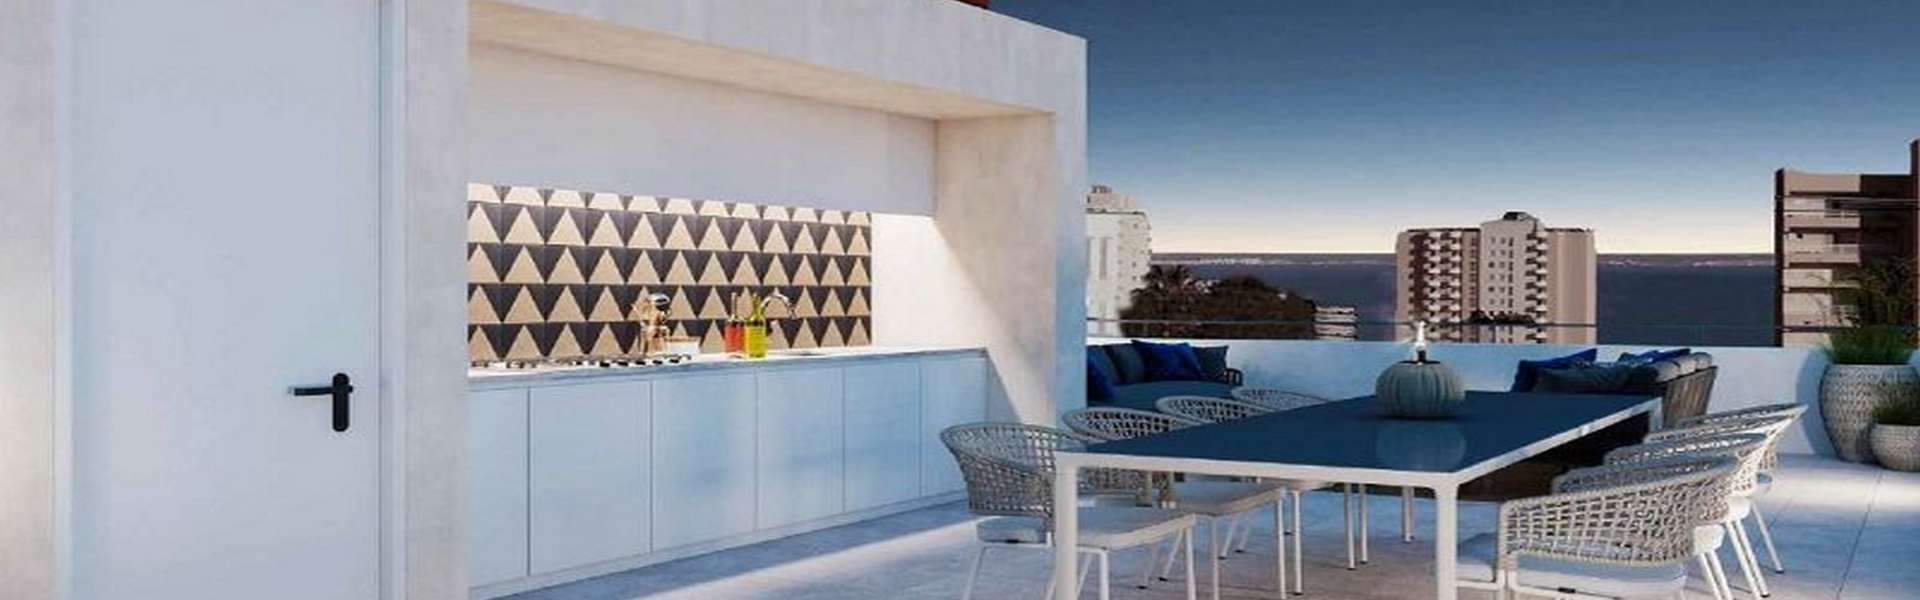 Palma/Sant Agustí - Luxurious semi-detached house for sale